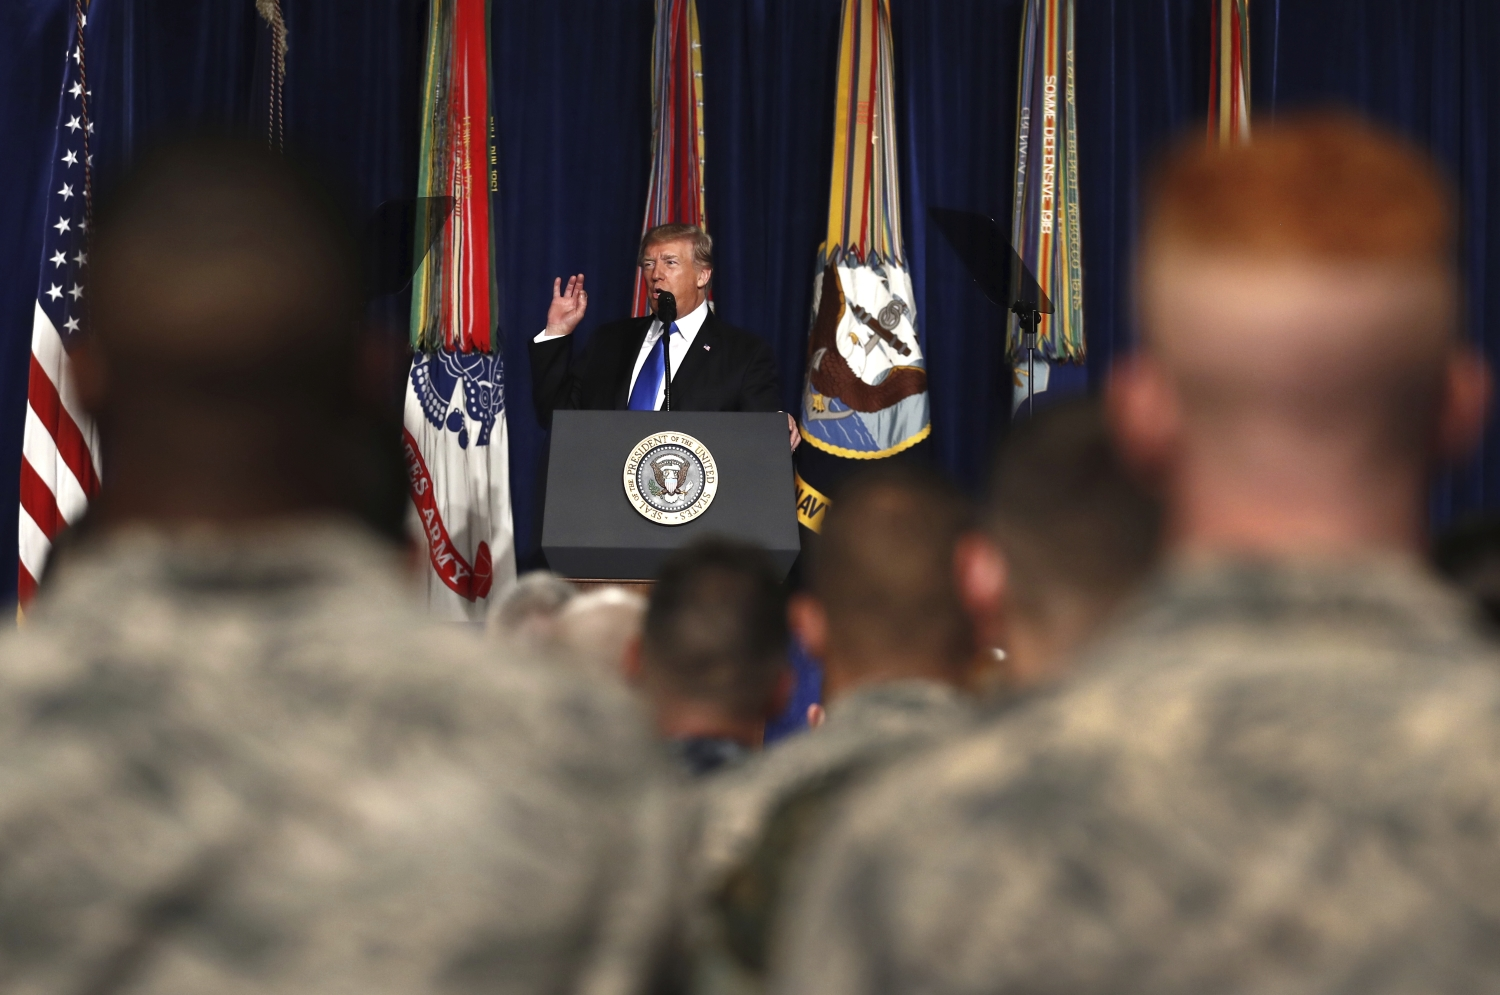 President Donald Trump speaks at Fort Myer in Arlington Va., Monday, Aug. 21, 2017, during an address to the nation about a strategy he believes will best position the U.S. to eventually declare victory in Afghanistan. (Carolyn Kaster/AP)